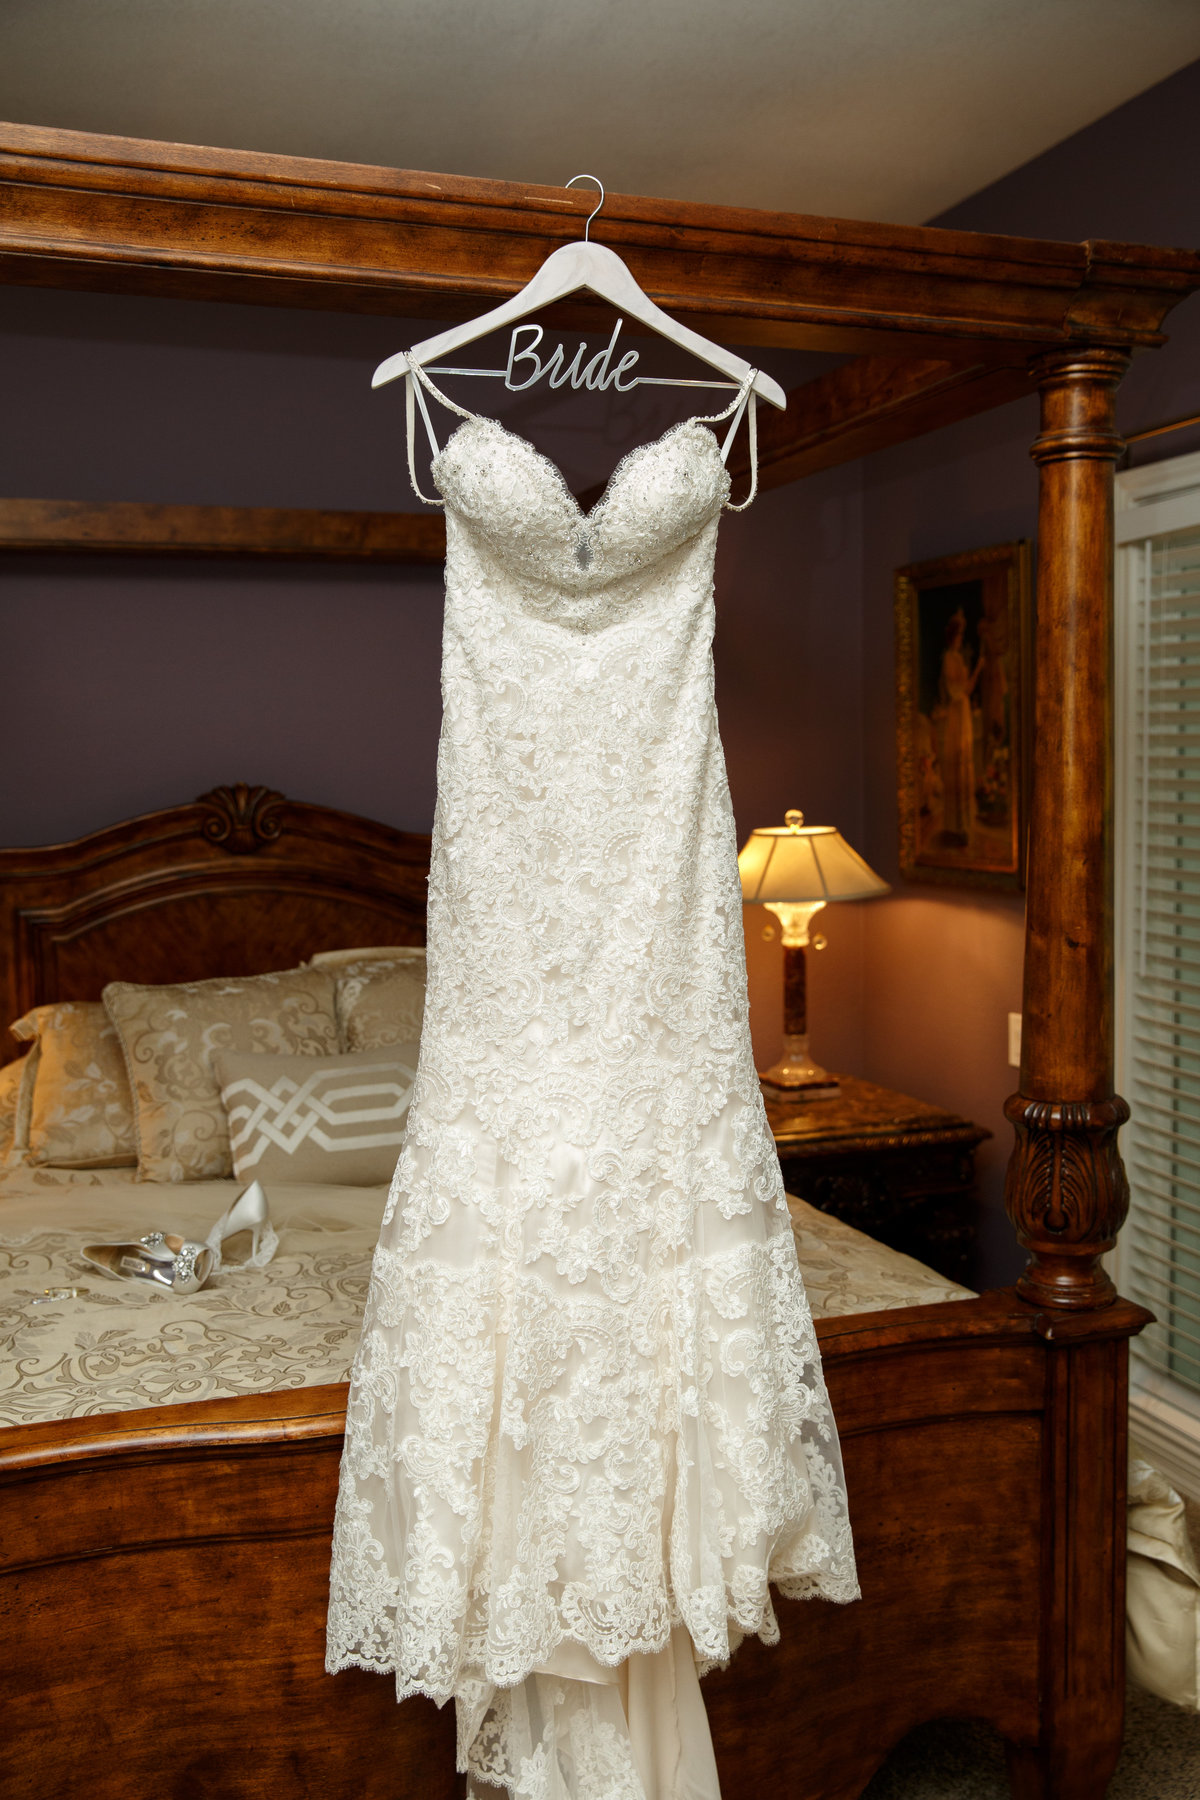 Austin wedding photographer casa blanca on brushy creek bride dress